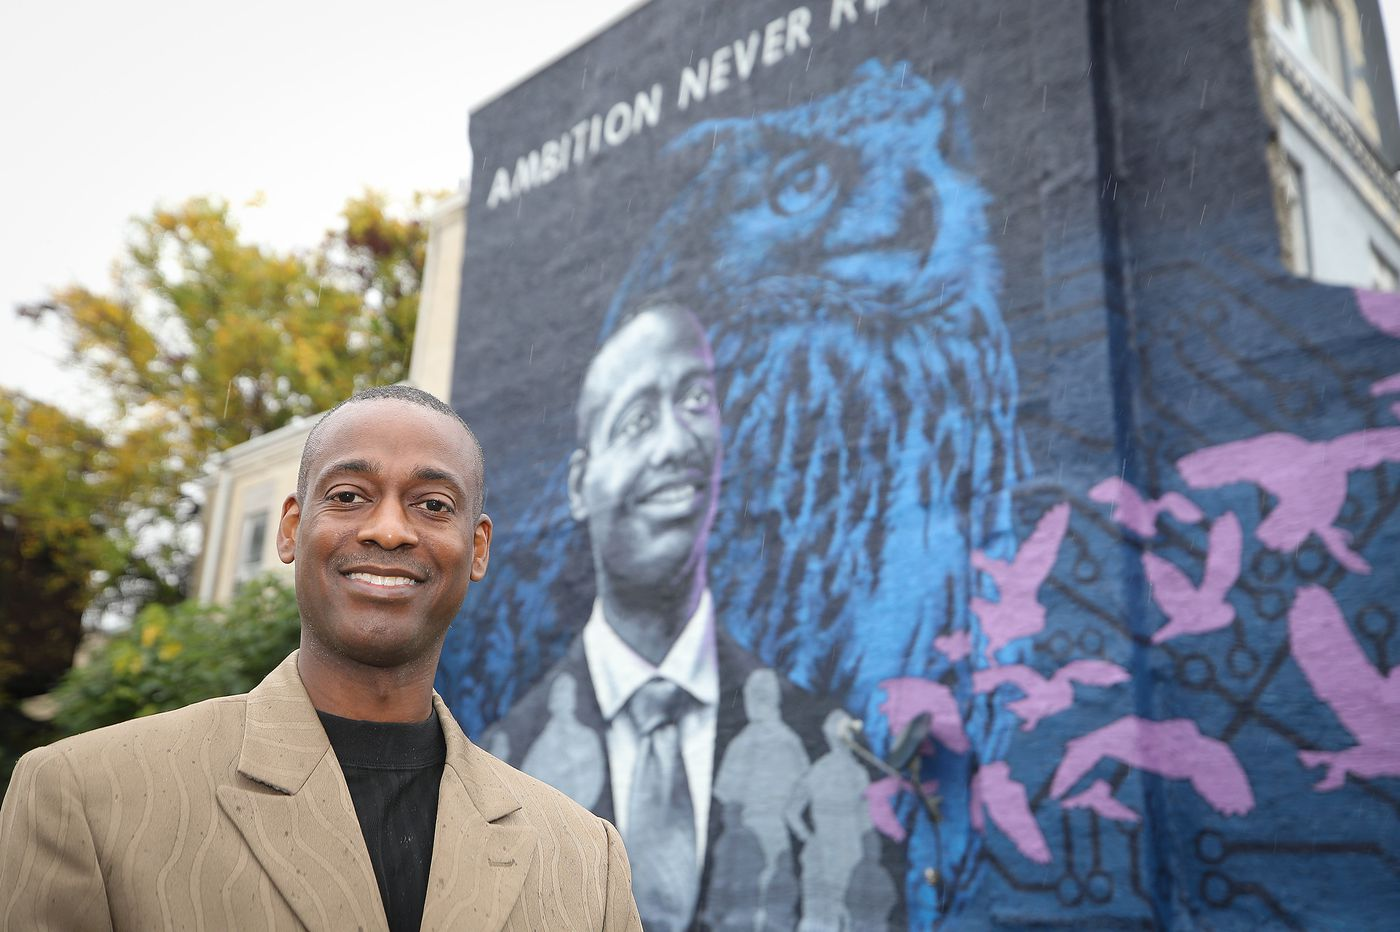 This Philly man's face is in a place to inspire young people in the Nicetown neighborhood where he grew up